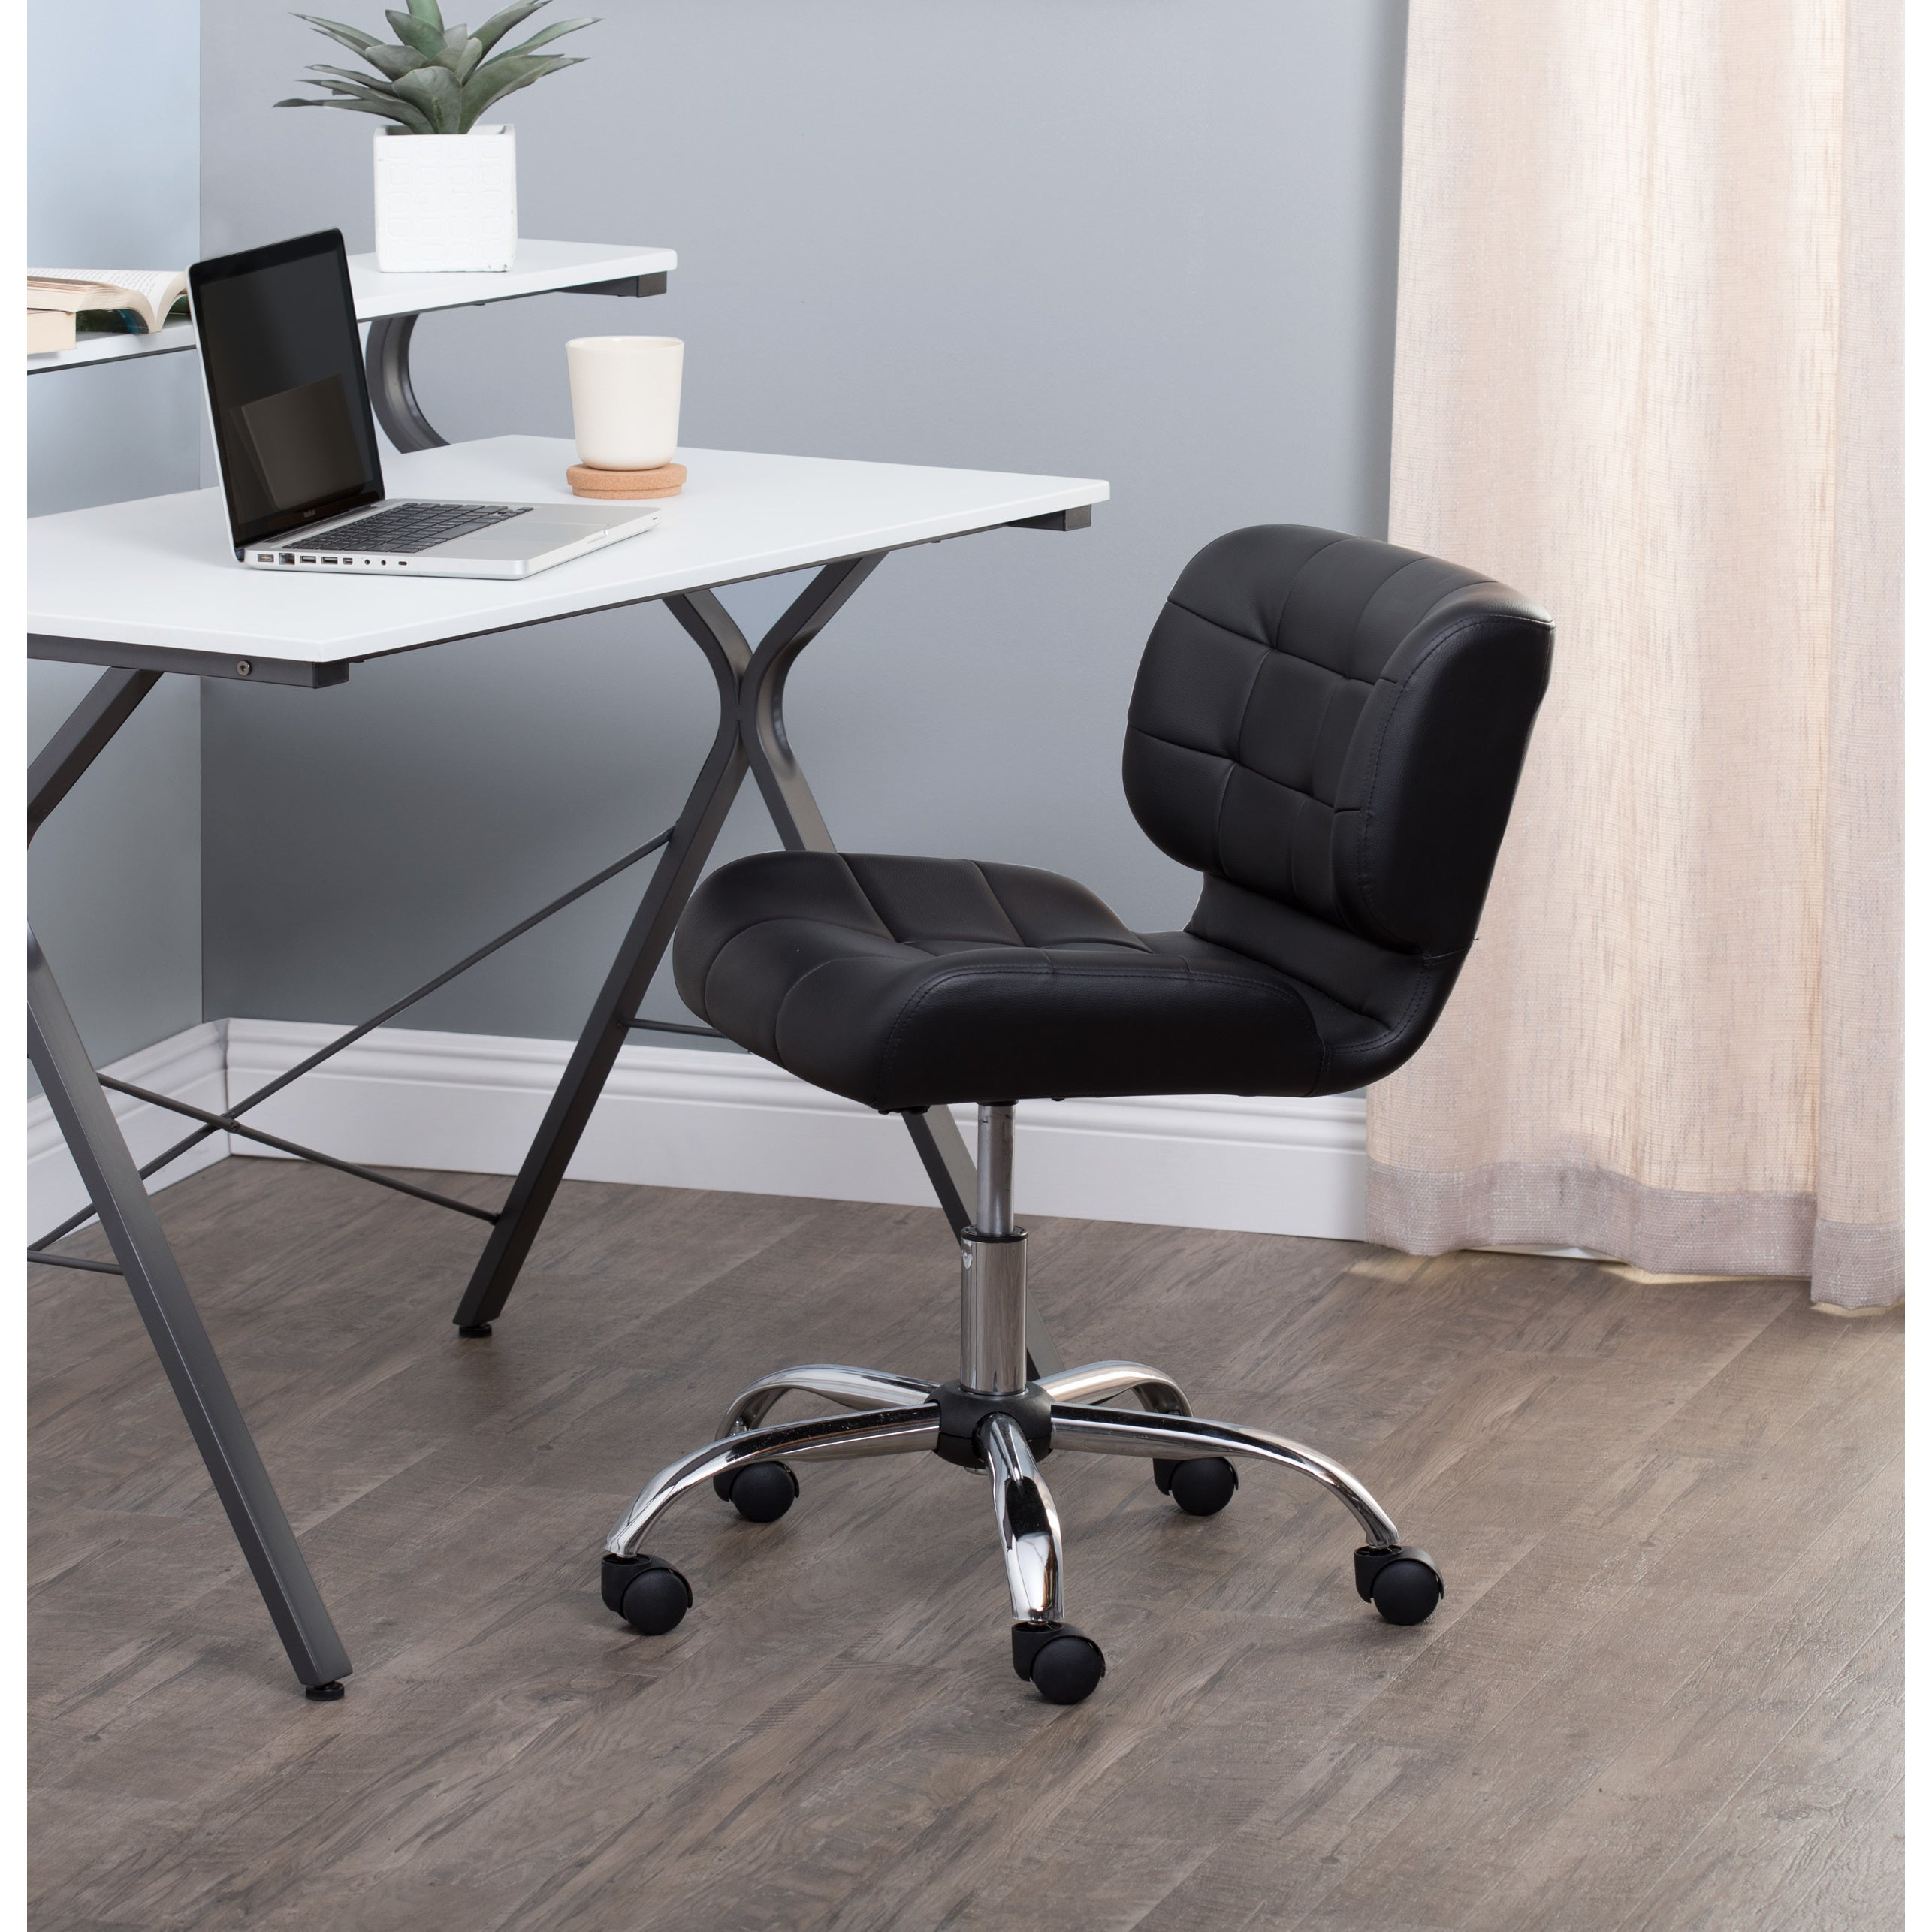 Calico Designs Crest Office Chair (Crest Office Chair / Black)